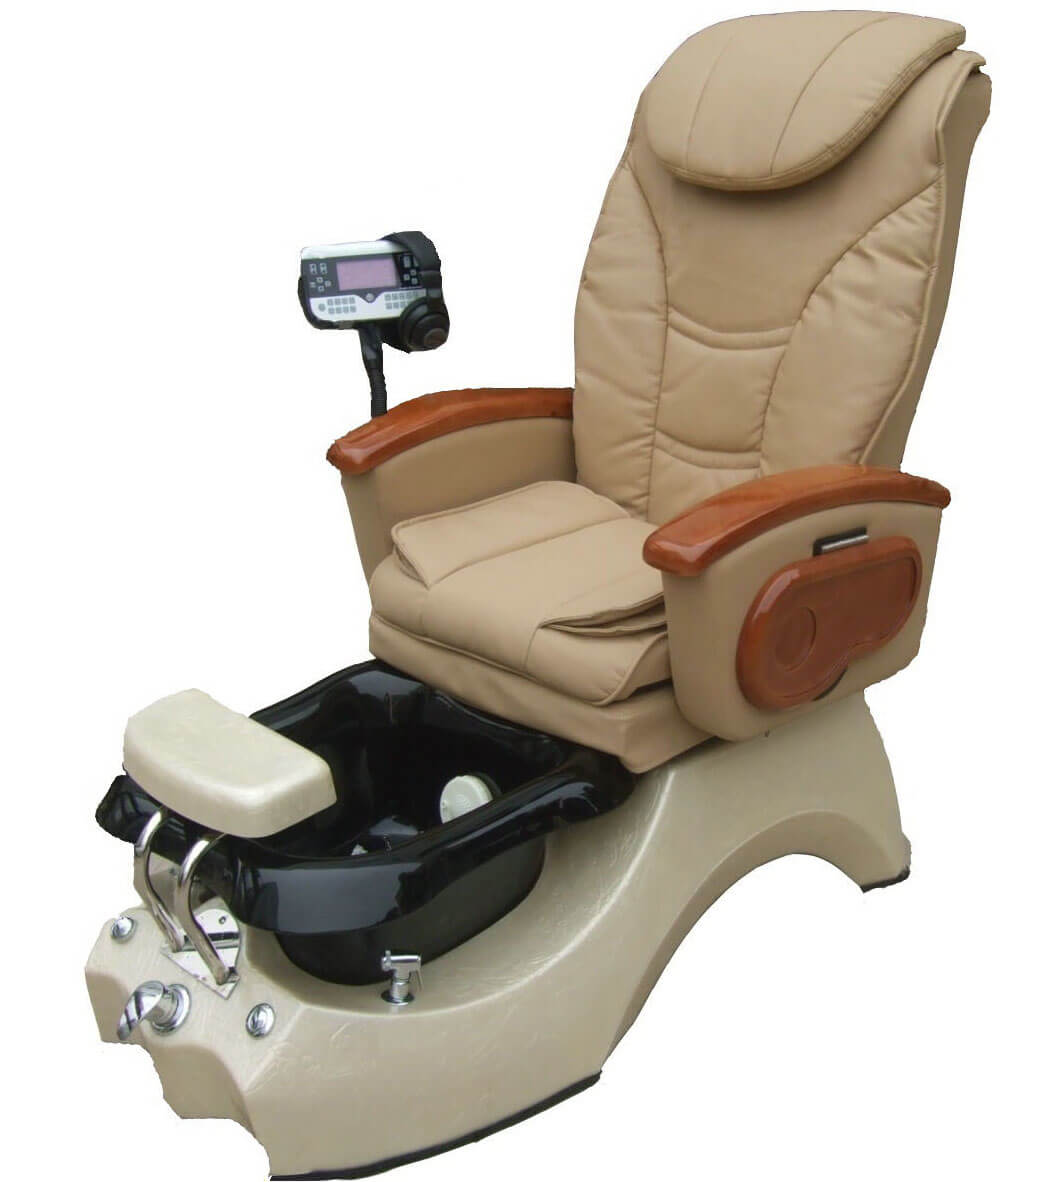 Pedicure Spa Chair Salon Equipment Toronto Products Salon Furniture Depot